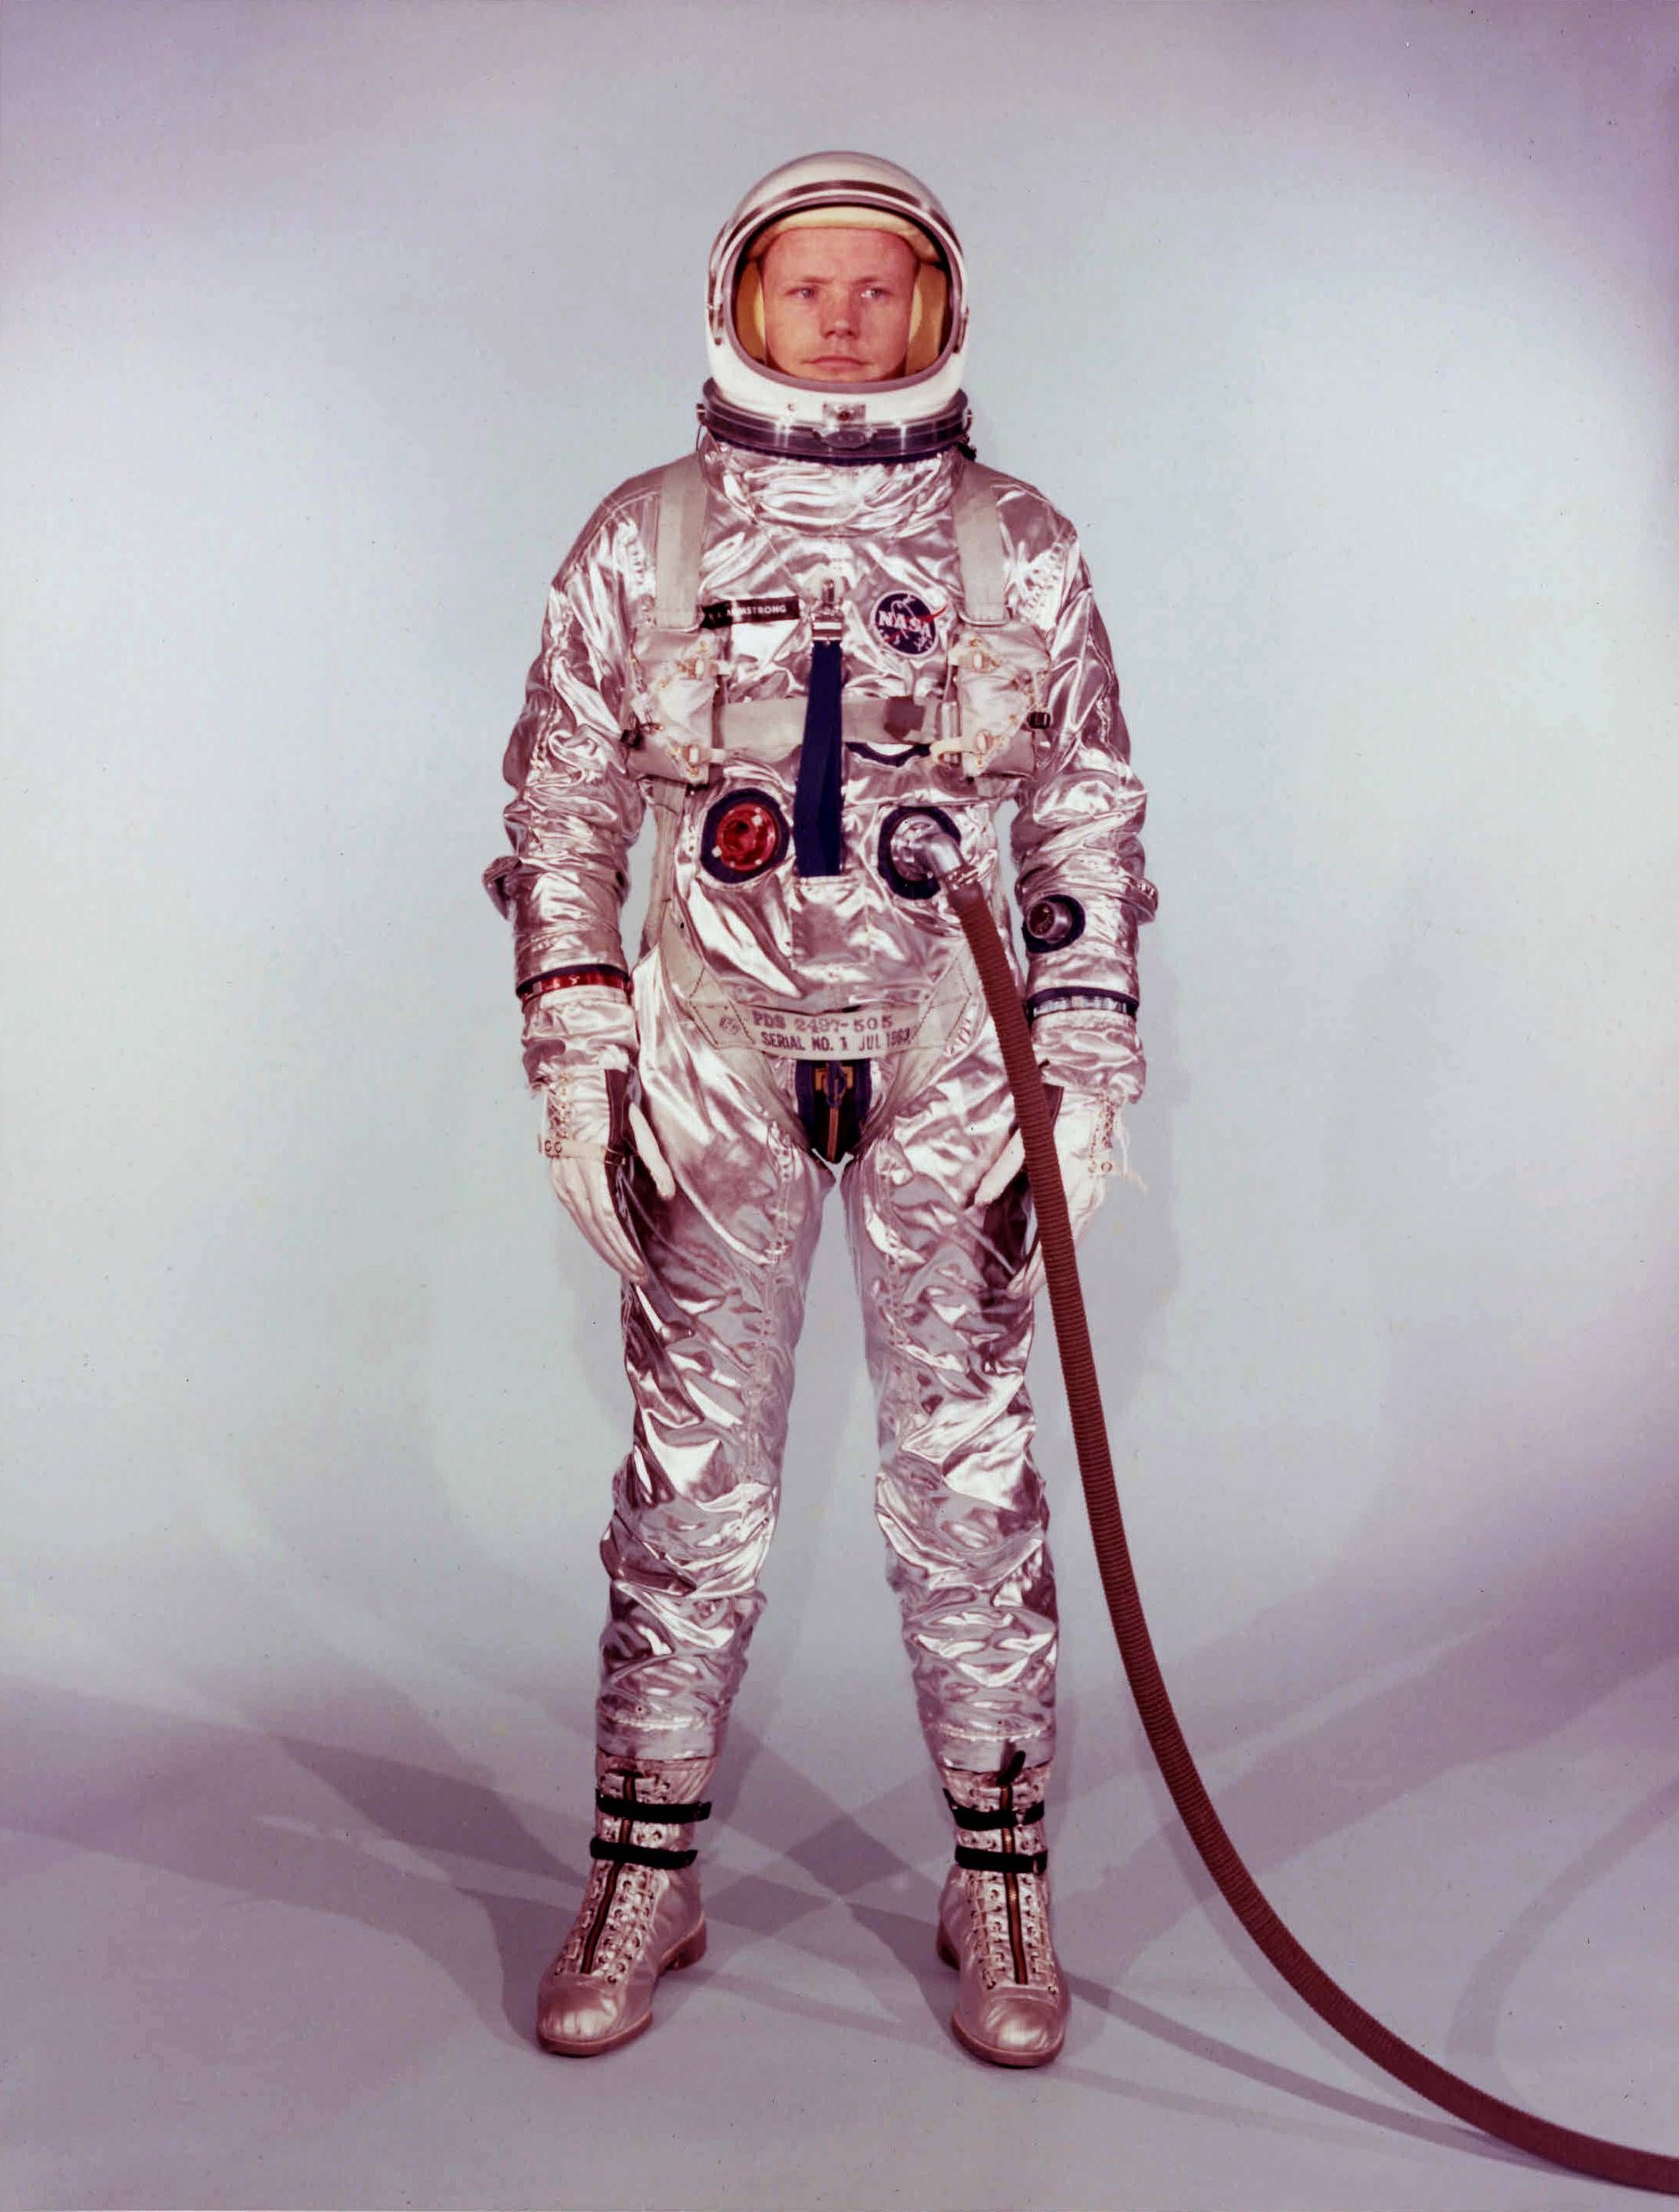 an astronaut in his space suit and with a propulsion - photo #23